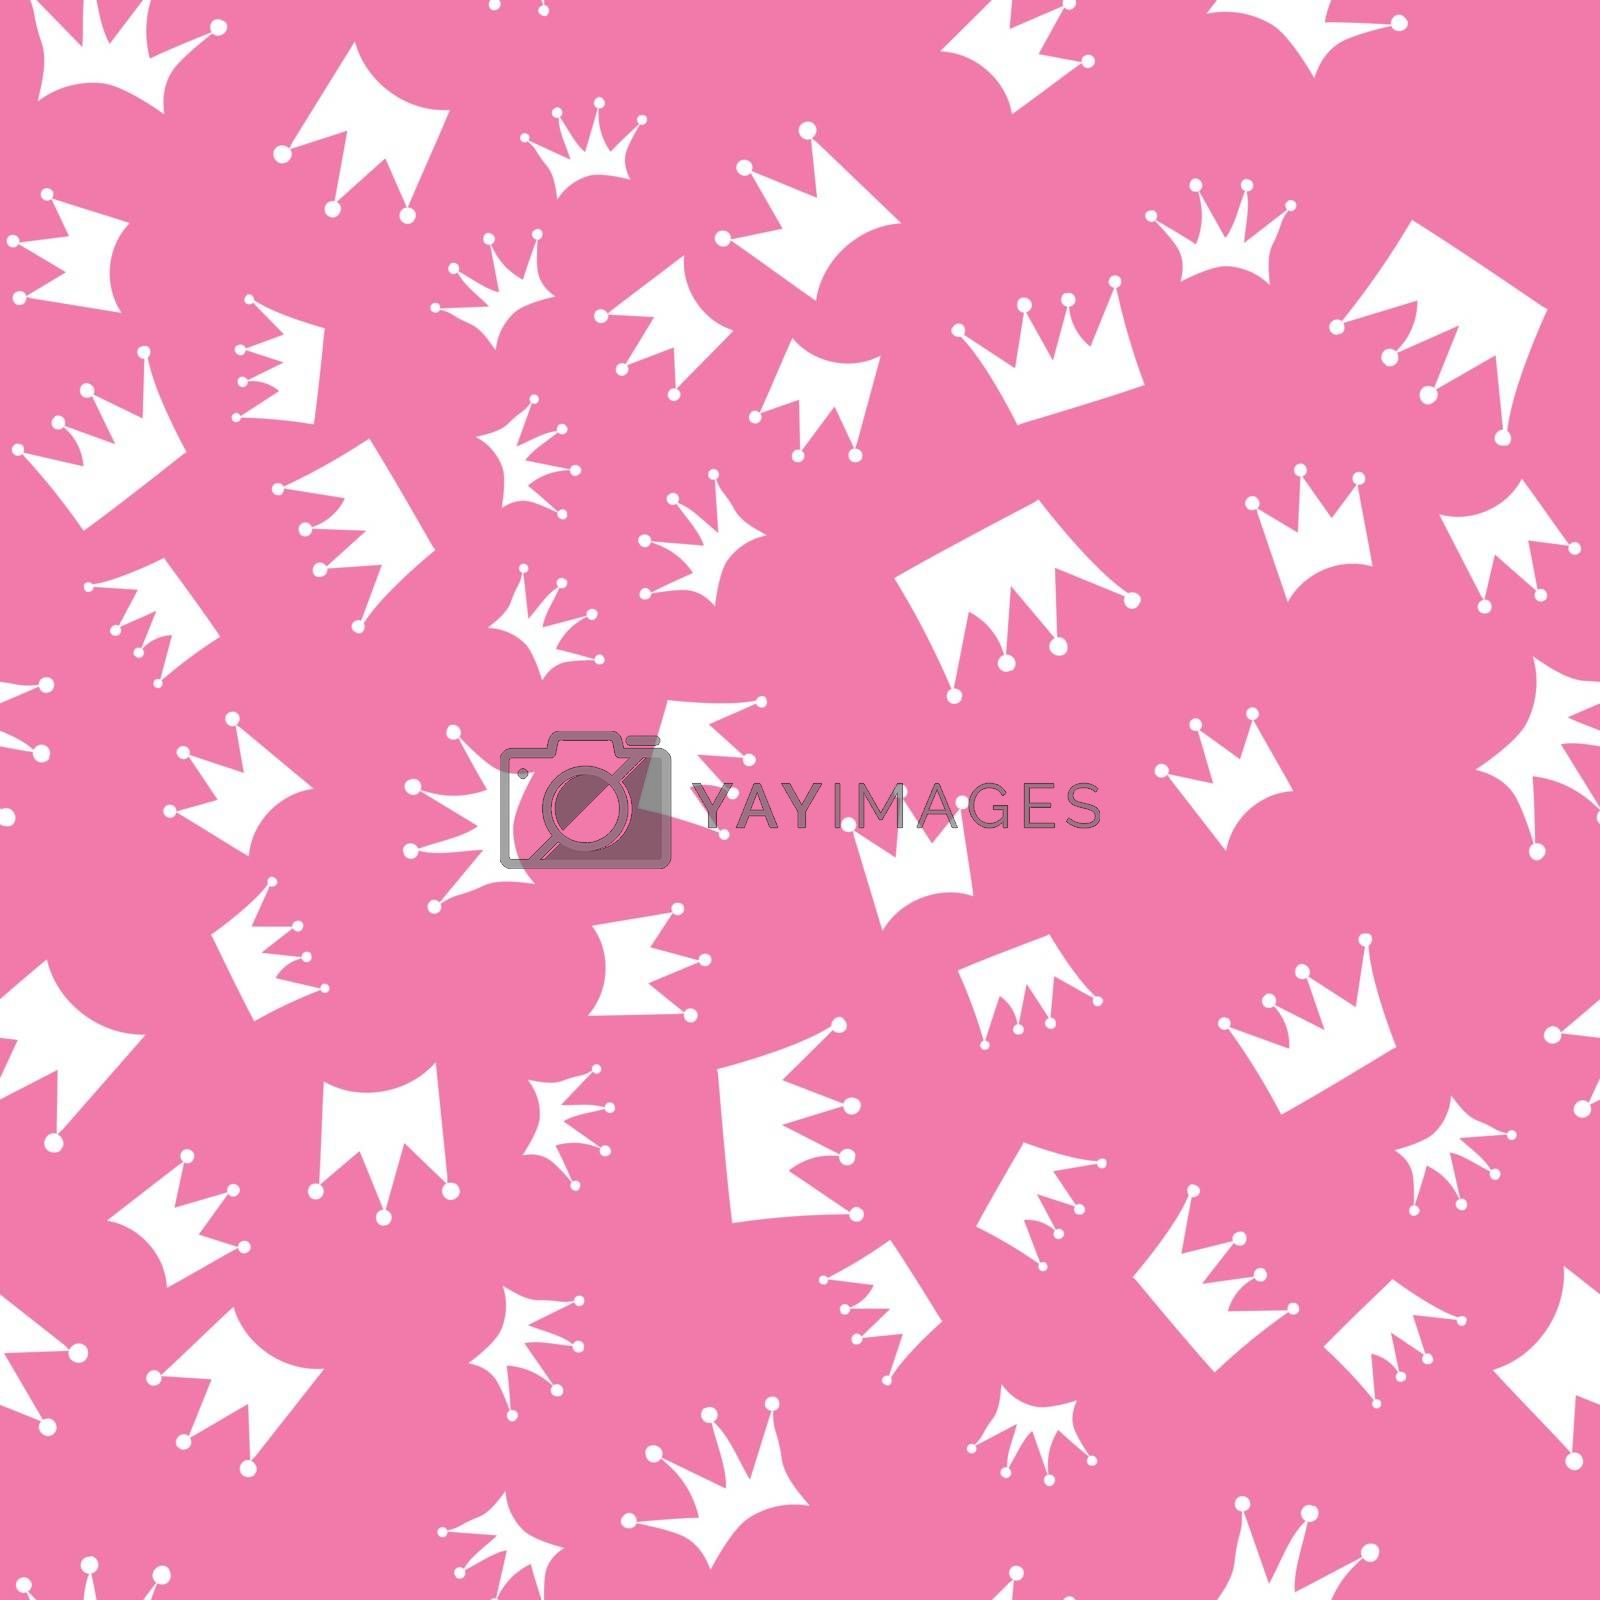 Seamless pattern. white silhouettes of crowns on a pink background by victosha